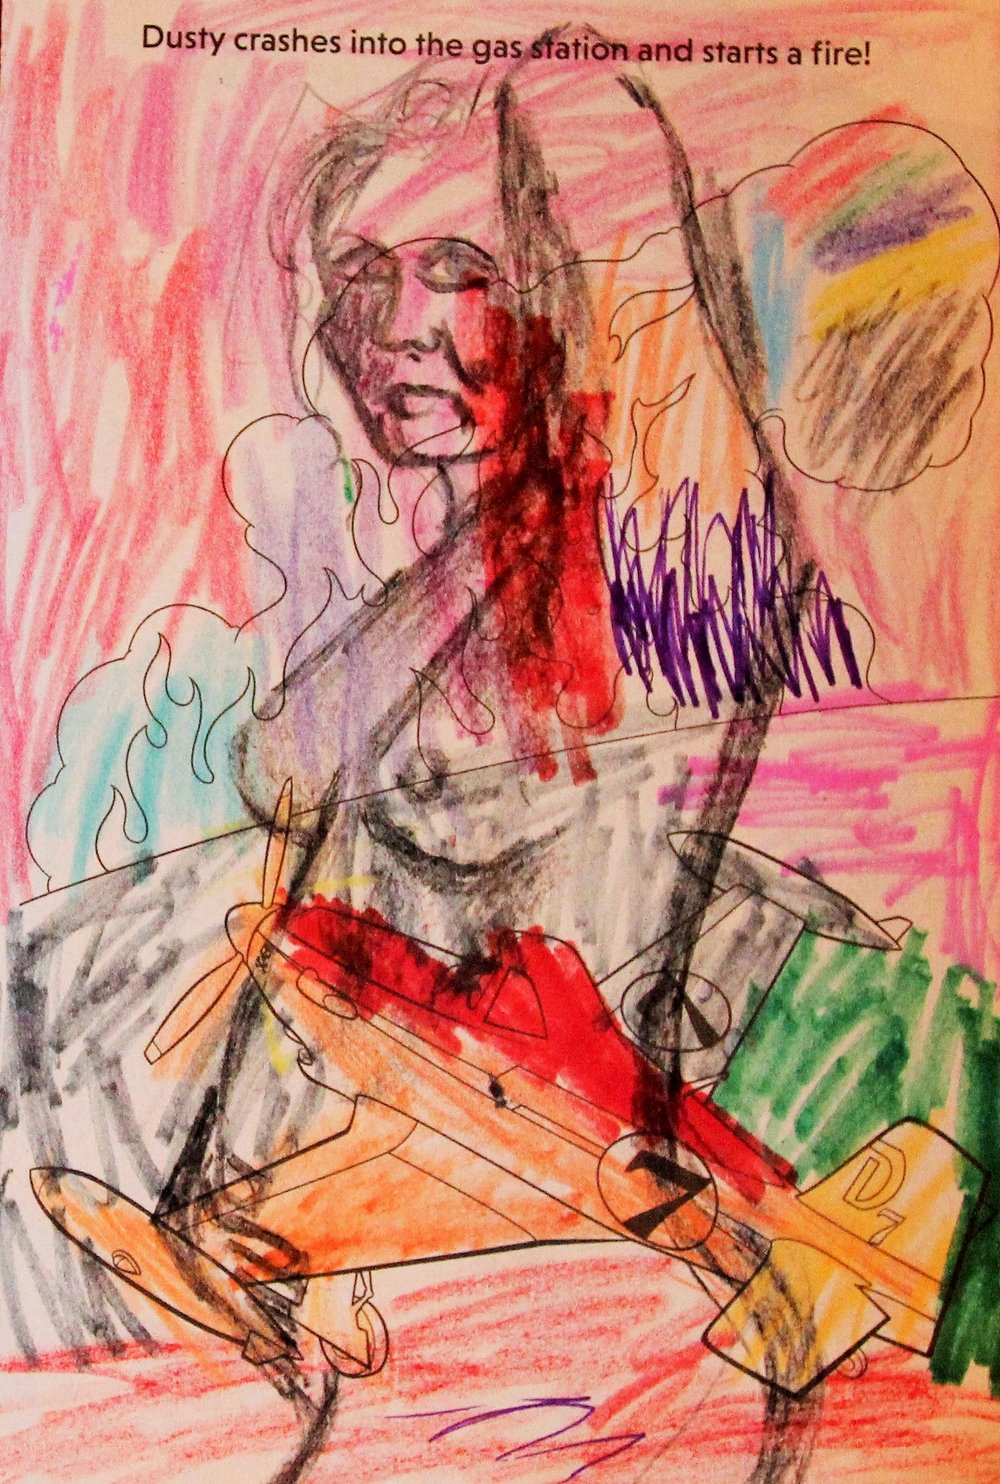 Art Time Mama (Dusty Crashes) Sally Deskins crayon, charcoal on children's coloring book page, 2018, with H. Deskins